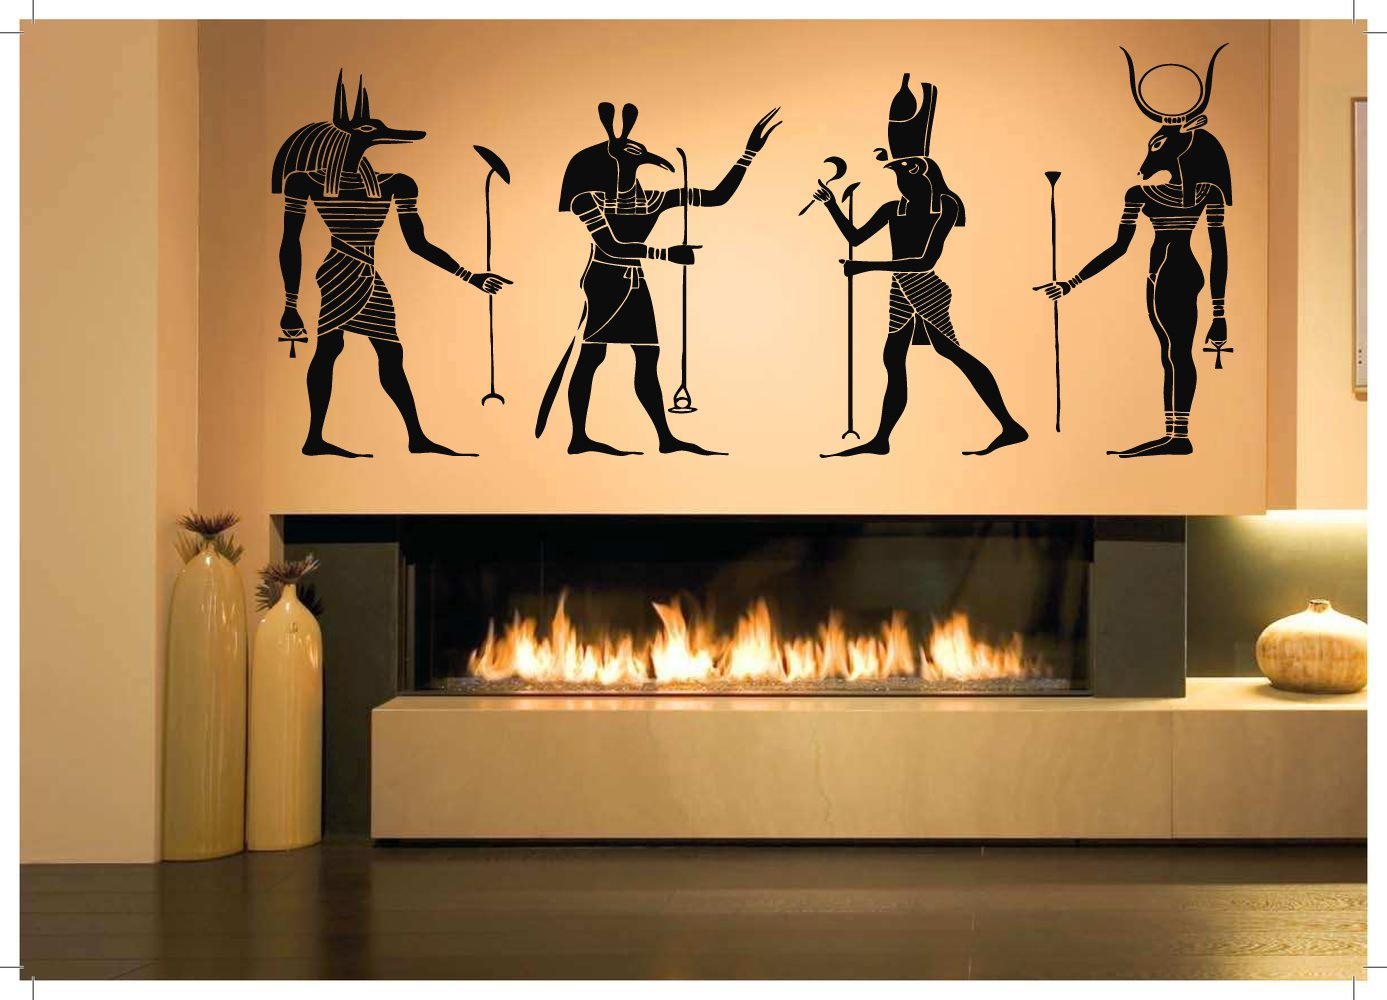 Amazon.com: Wall Room Decor Art Vinyl Sticker Mural Decal Egyptian ...